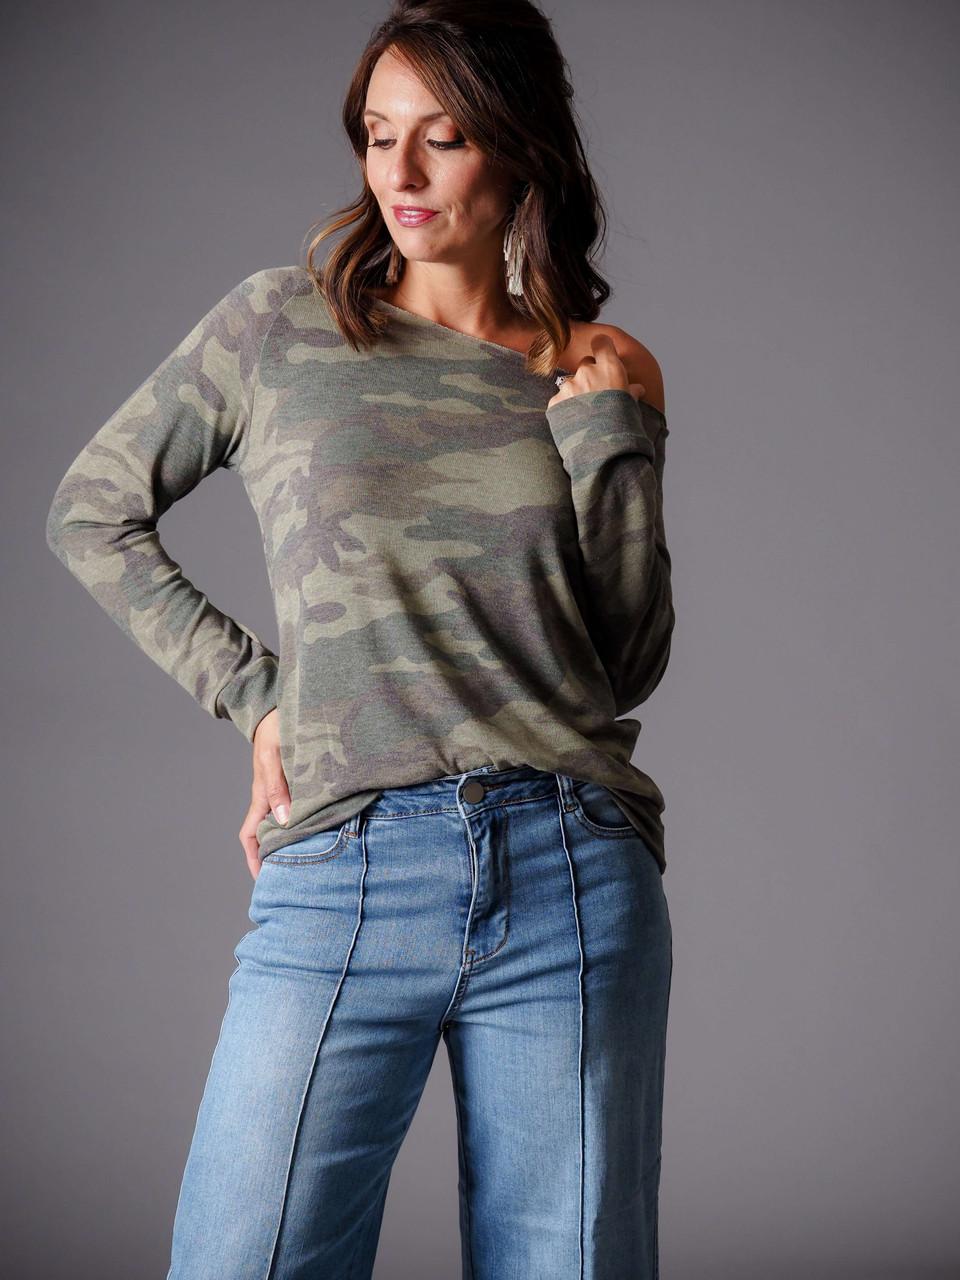 olive green camo top